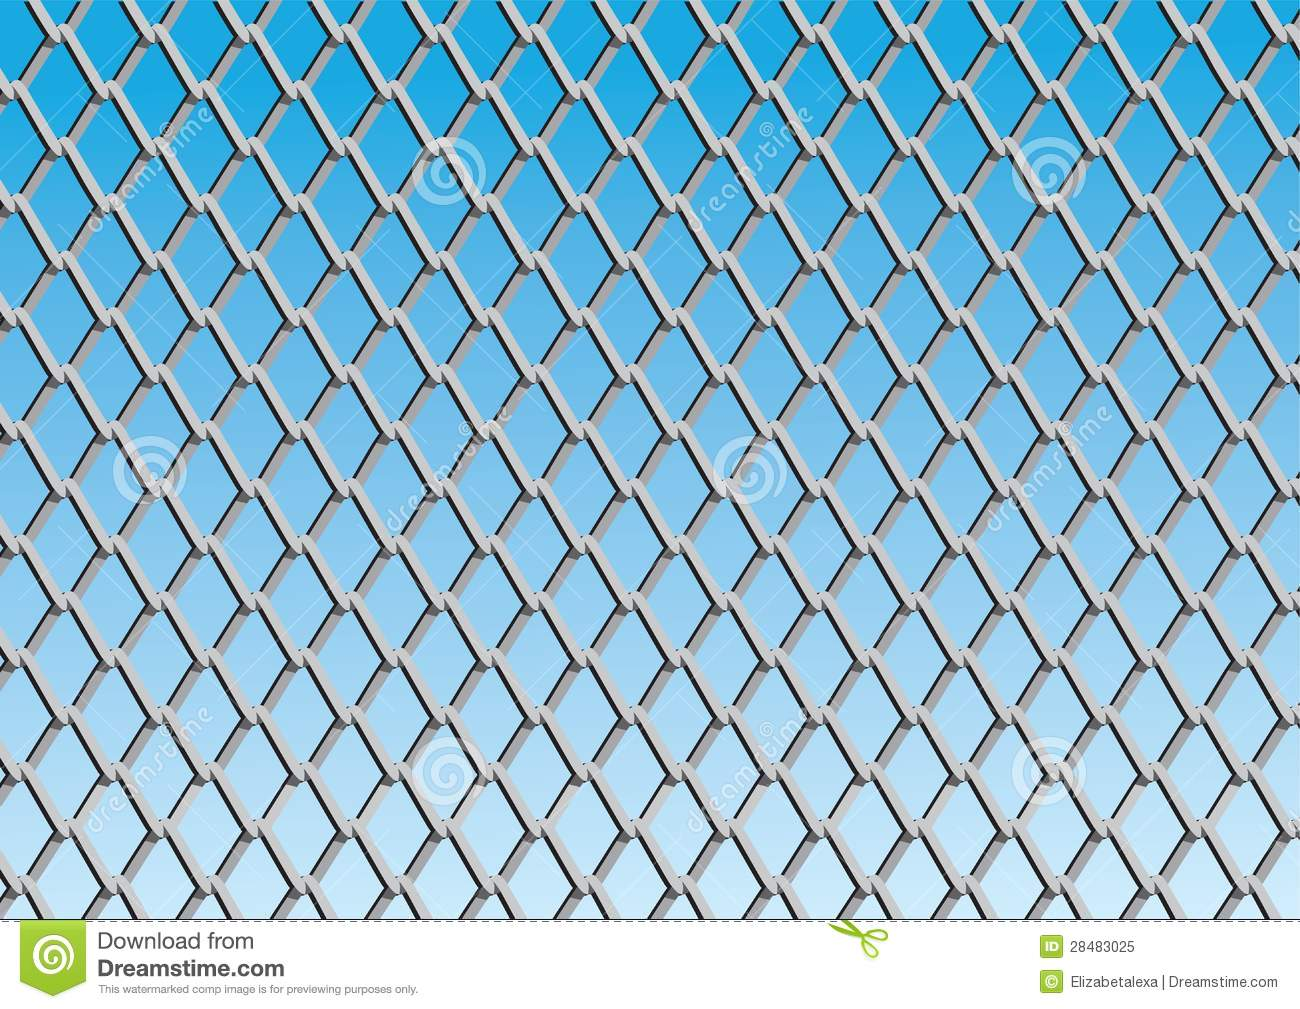 Chain Link Fence Wallpaper: Chain Link Fence With Blue Sky Background Royalty Free